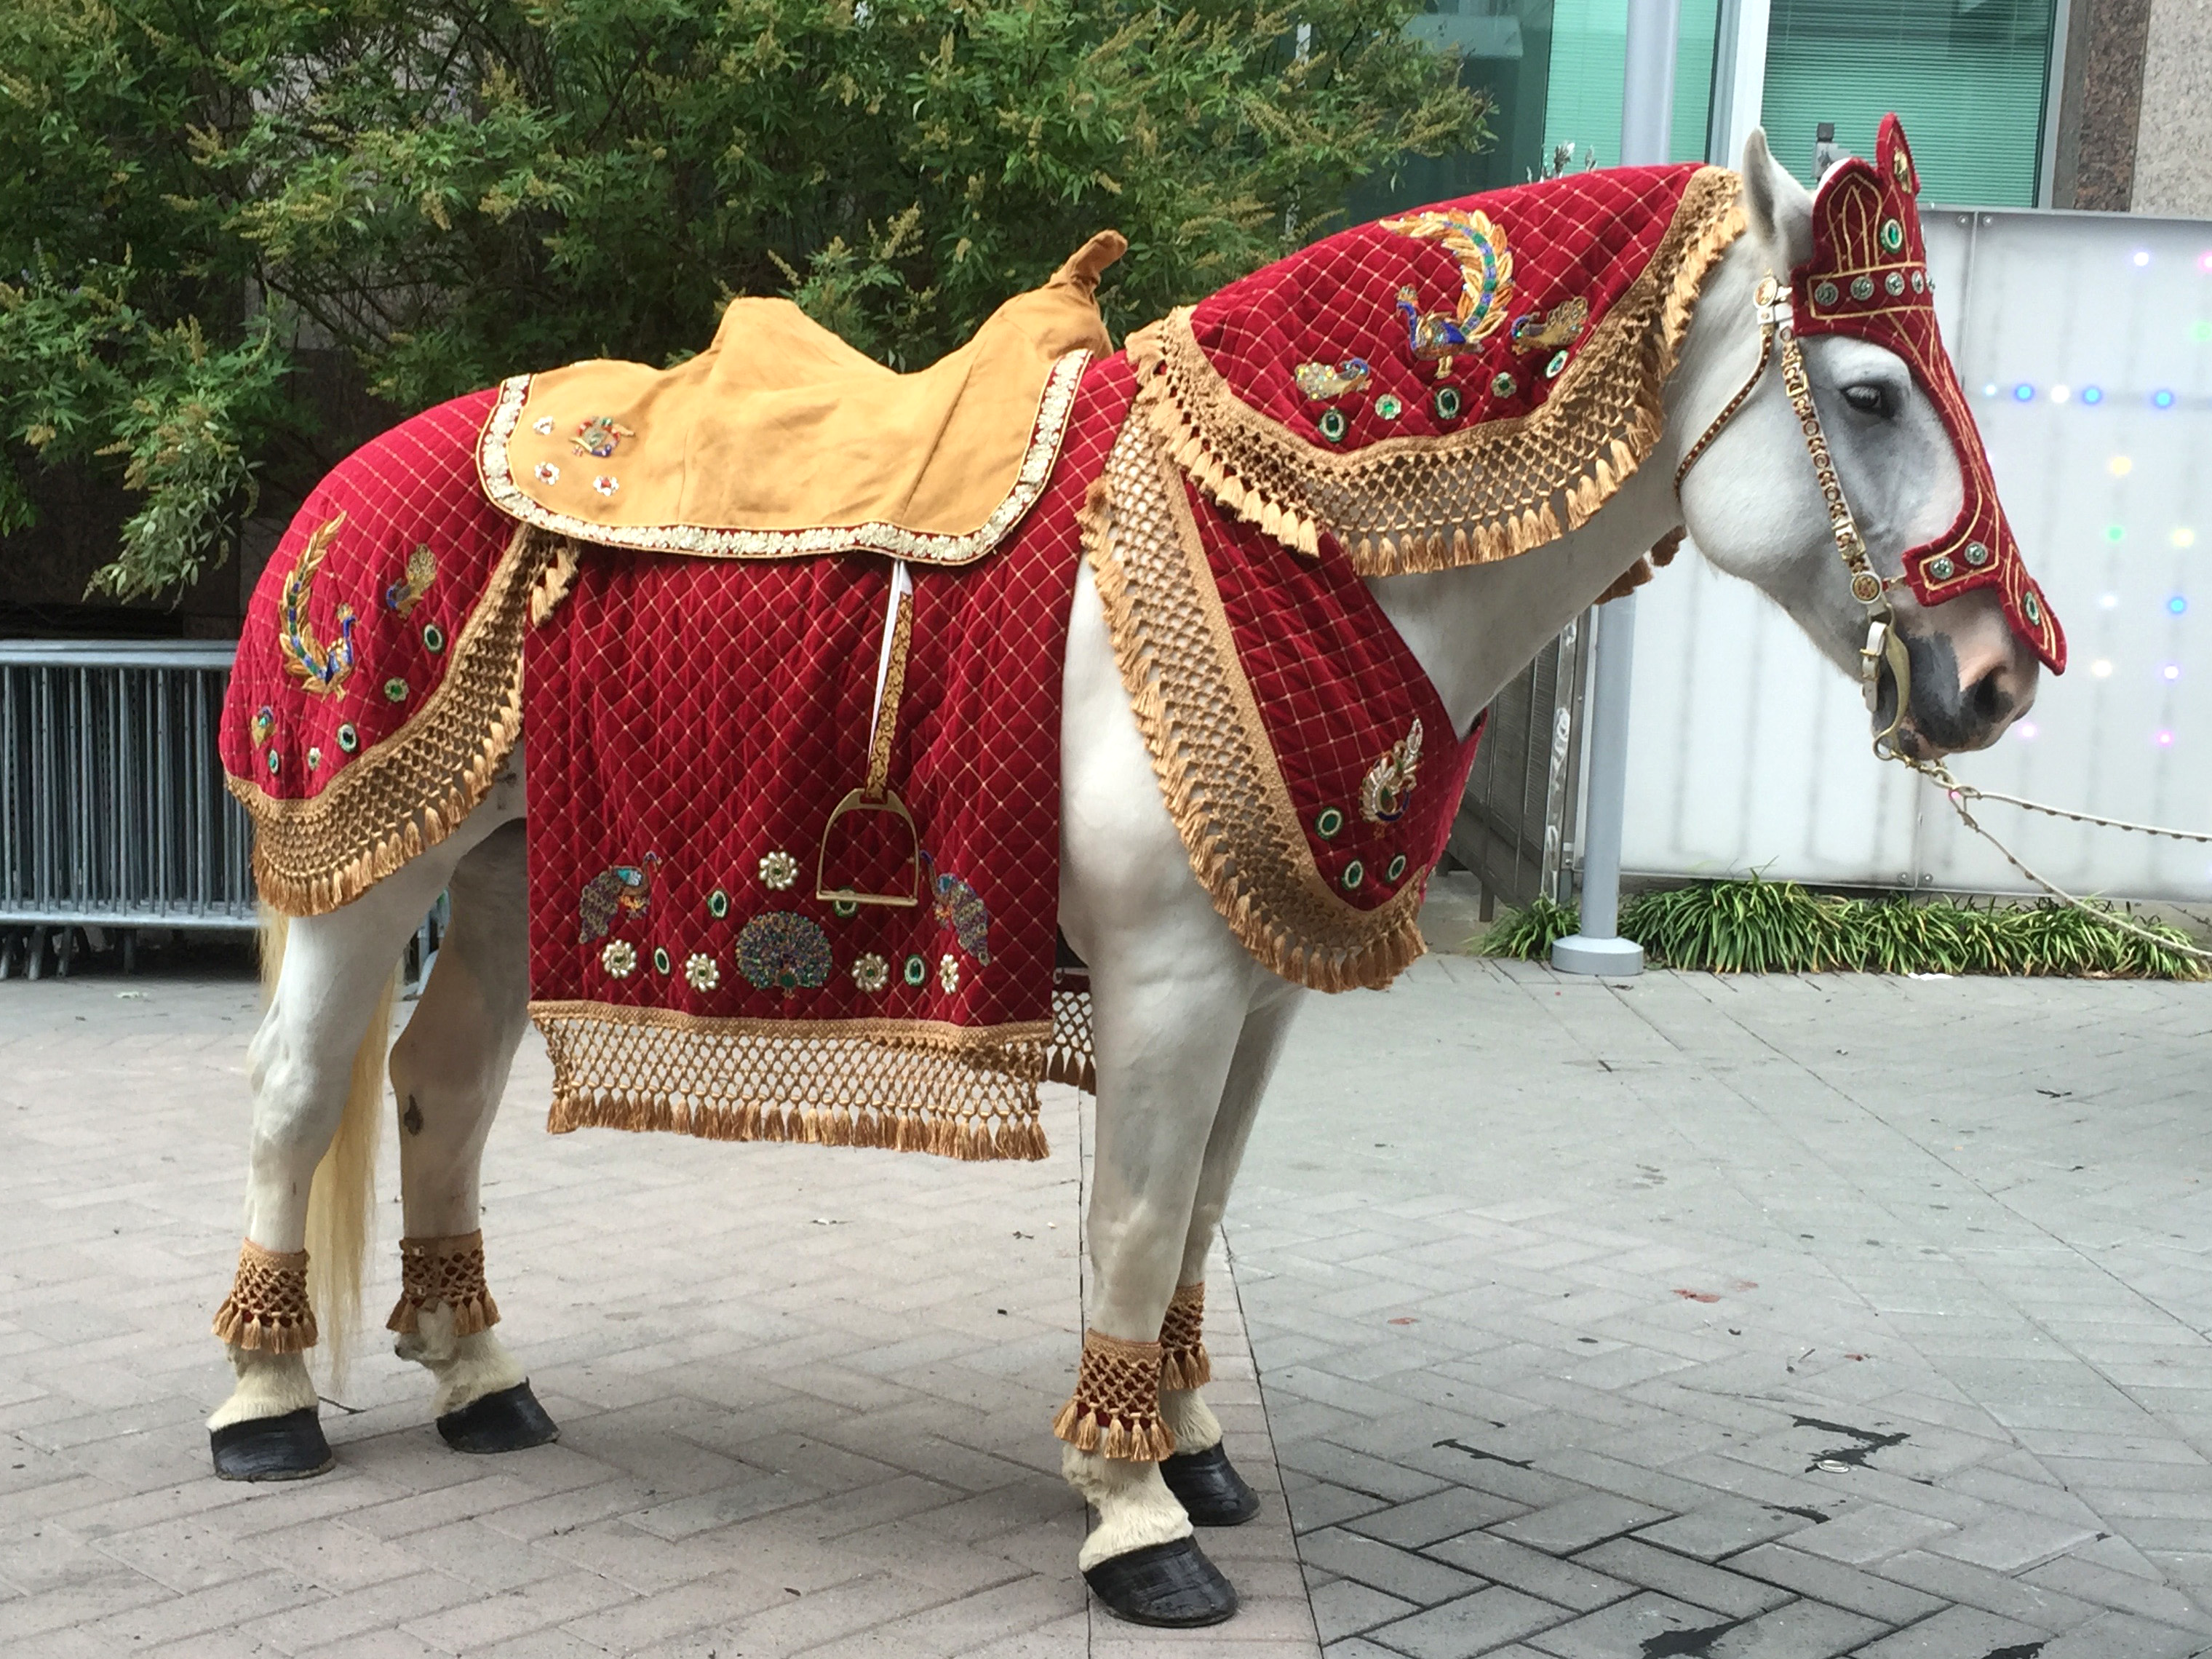 https://0201.nccdn.net/1_2/000/000/0e4/43b/horse-dressed-for-indian-wedding.png